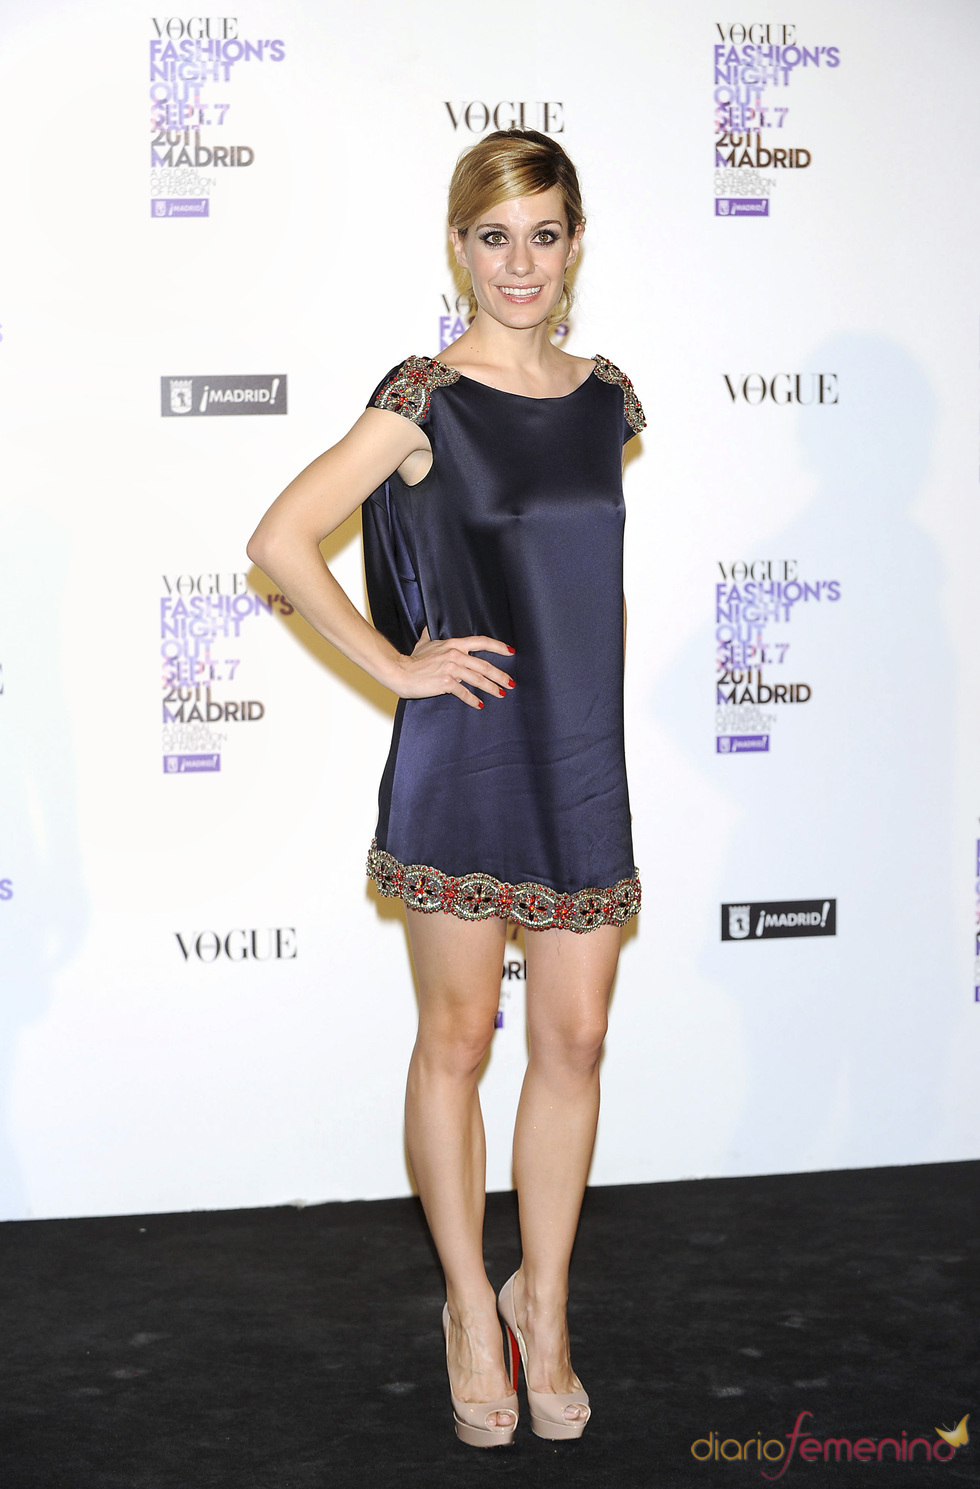 Alexandra Jiménez durante la Vogue Fashion Night Out Madrid 2011